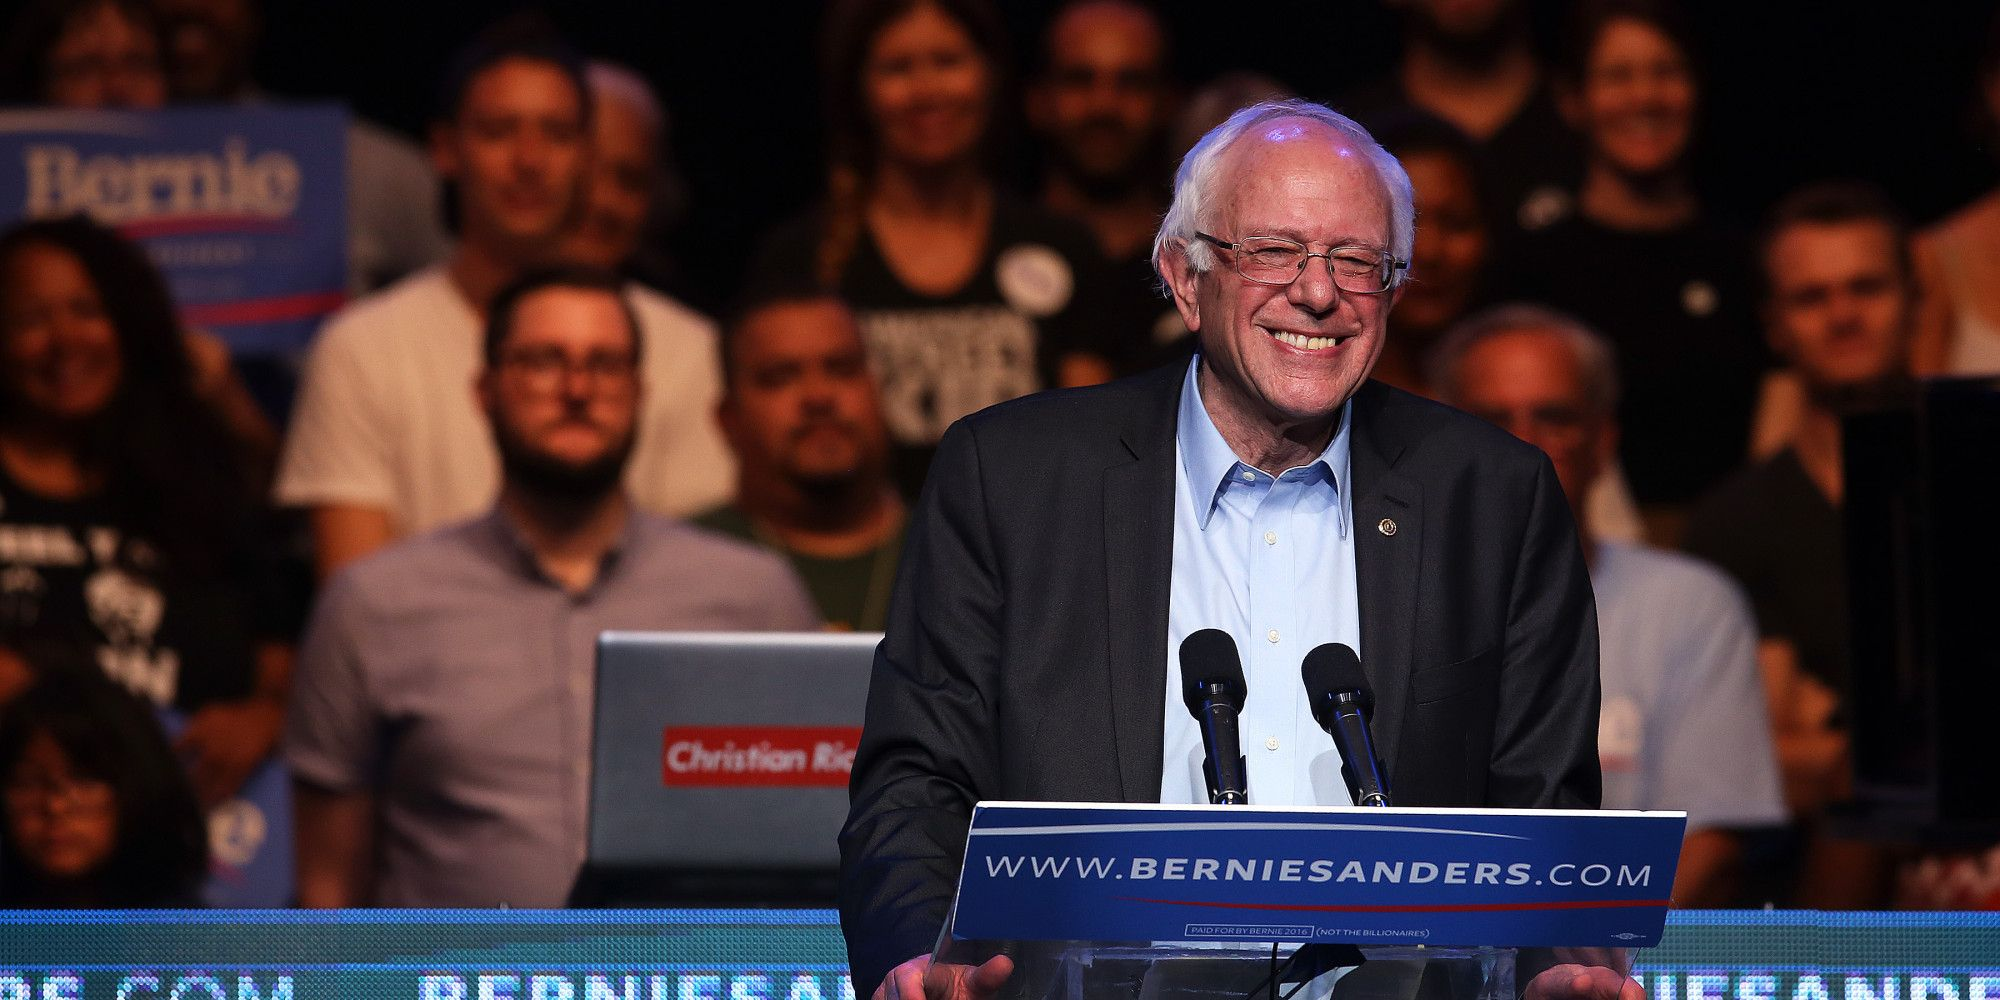 Sanders doesn't have the scandals or honesty issues that Trump could pounce upon in a debate, and Bernie matches up nicely with Trump in a general election for numerous other reasons. Ultimately, Donald Trump embodies every single warning of Bernie Sanders pertaining to money in politics and billionaires controlling the fate of our nation.